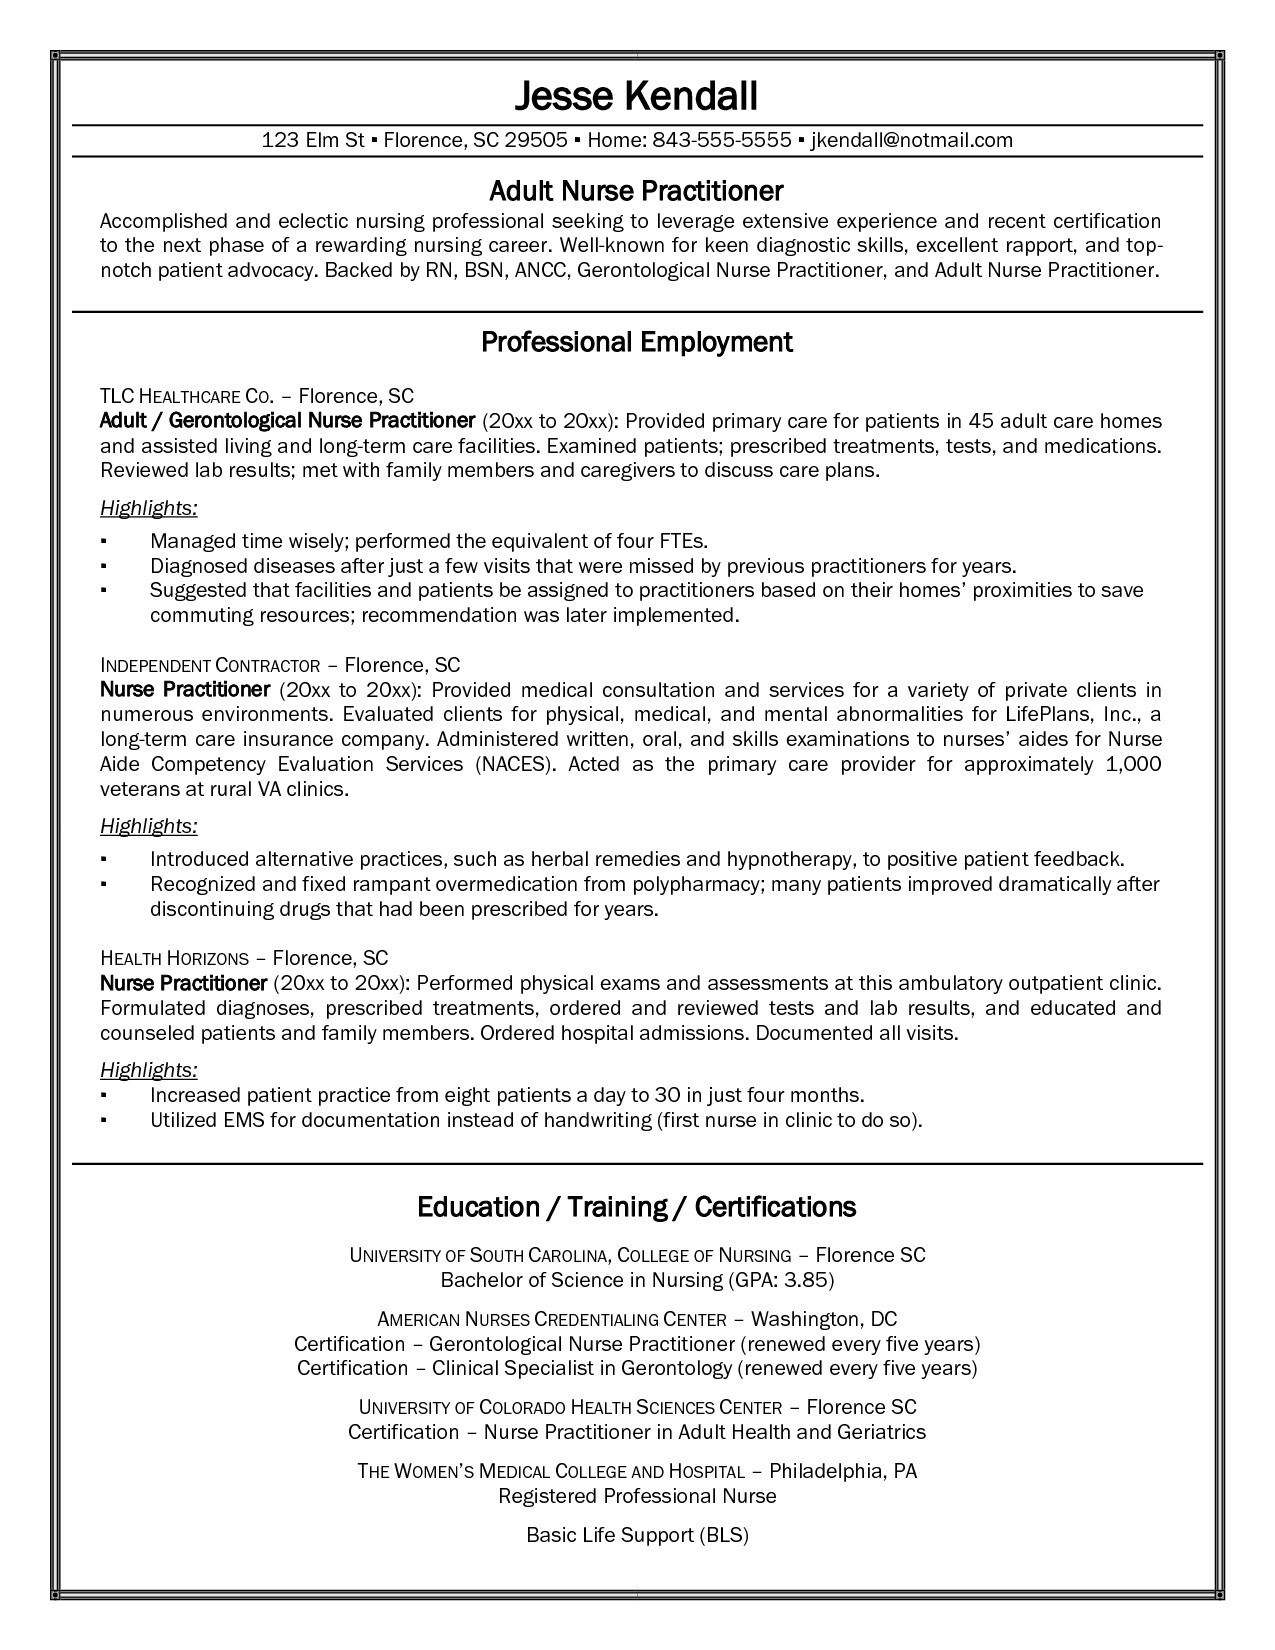 Resume Objective Examples  Sample Nurse Practitioner Resume Best Of Chef Resume Objective